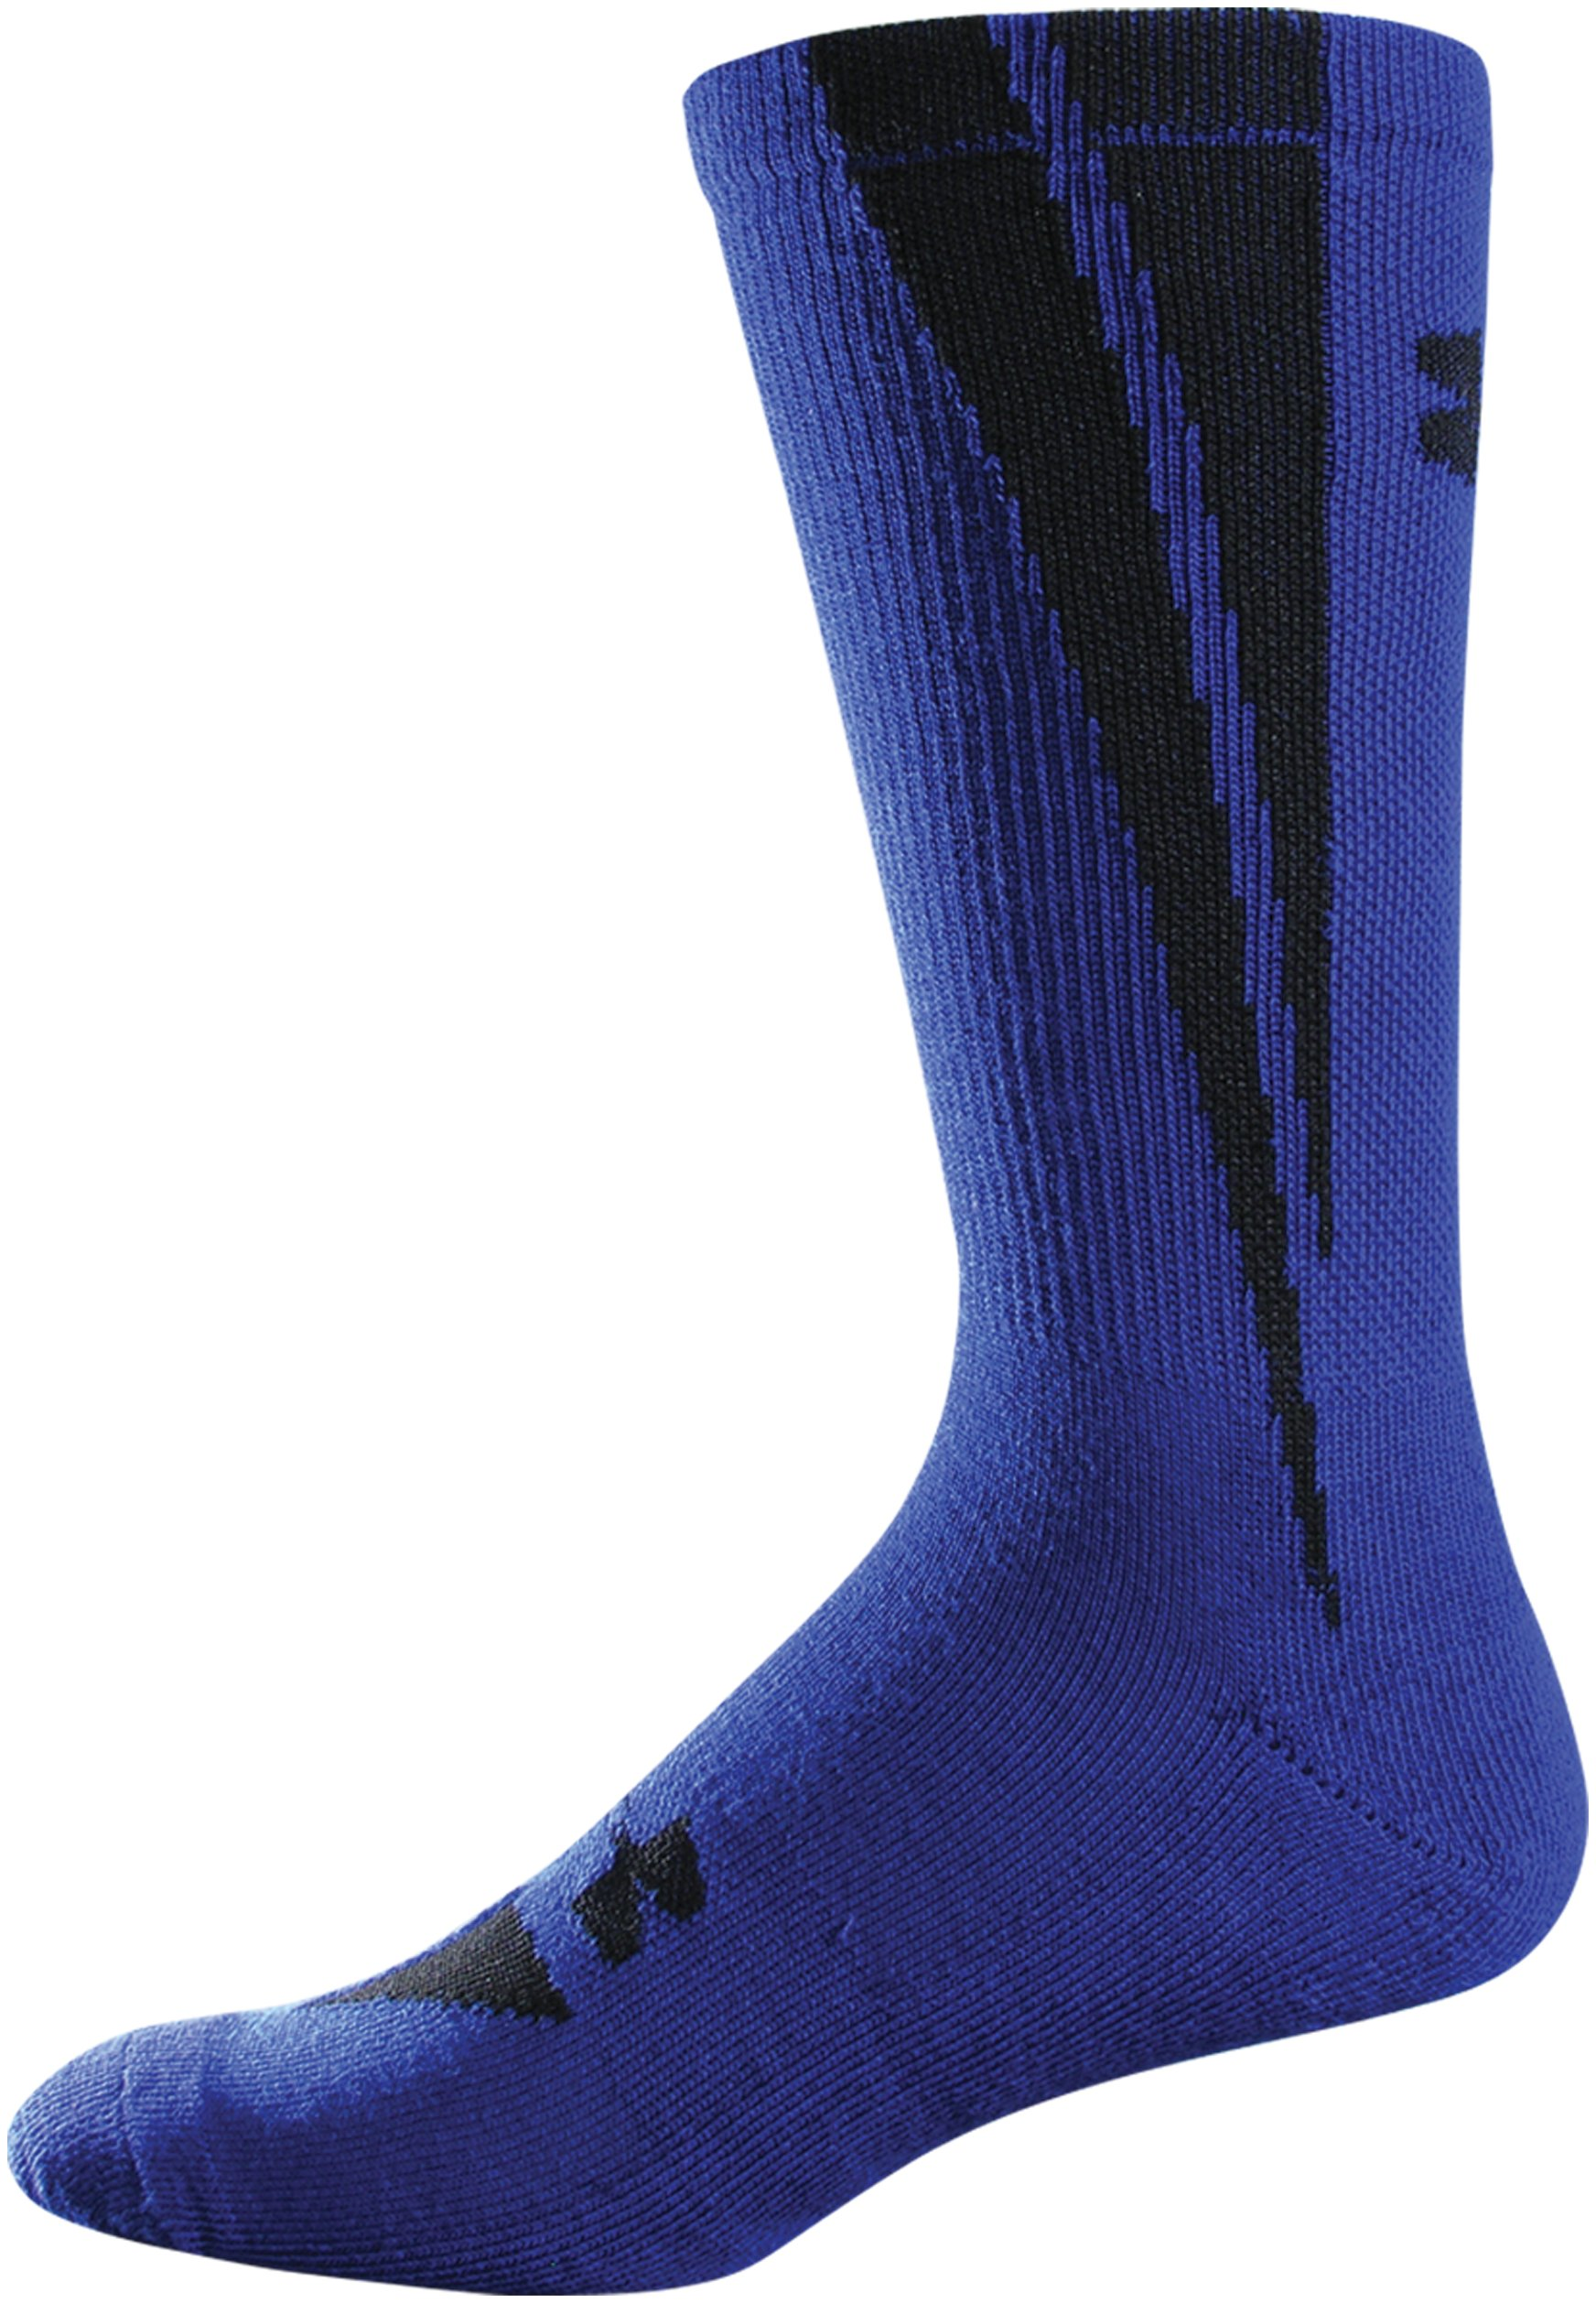 UA Ignite Crew Socks, Royal